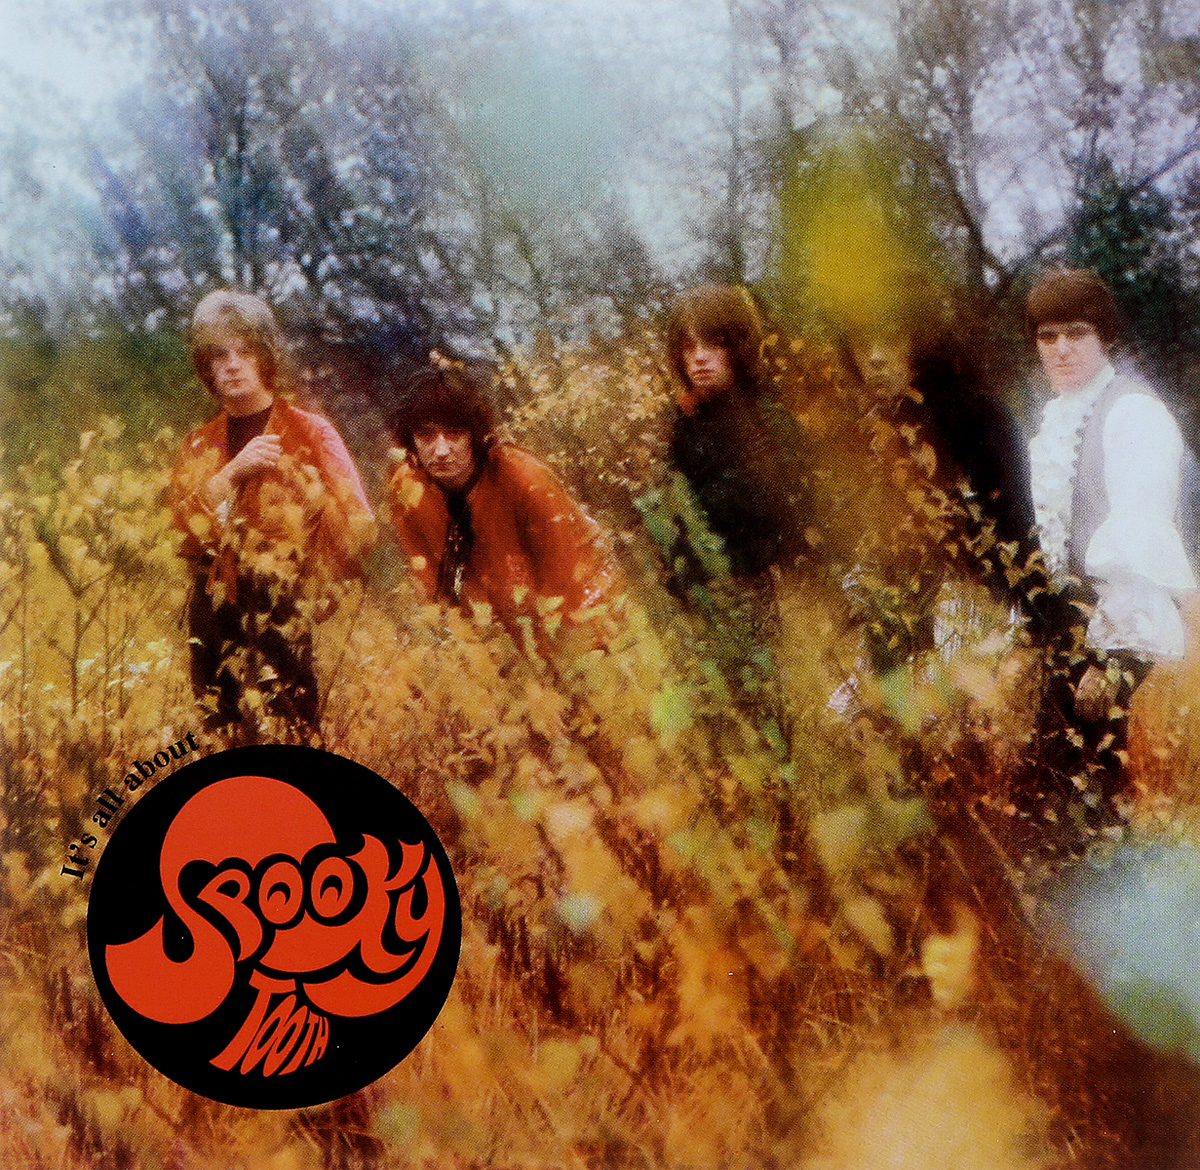 Spooky Tooth Spooky Tooth. It's All About spooky night